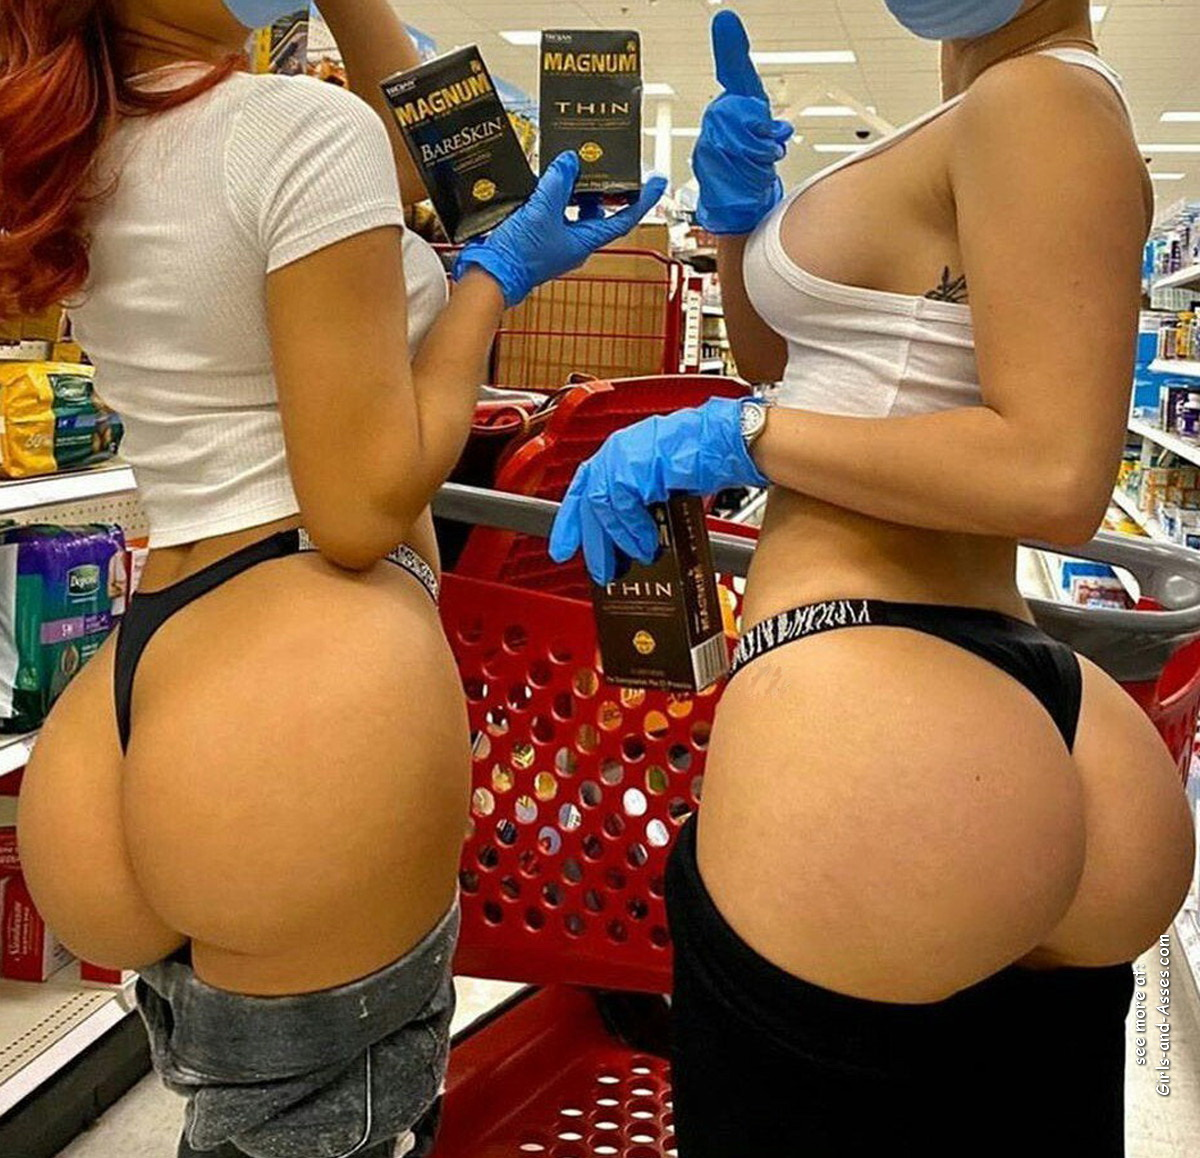 nude shopping photo girl shows ass in store 02934